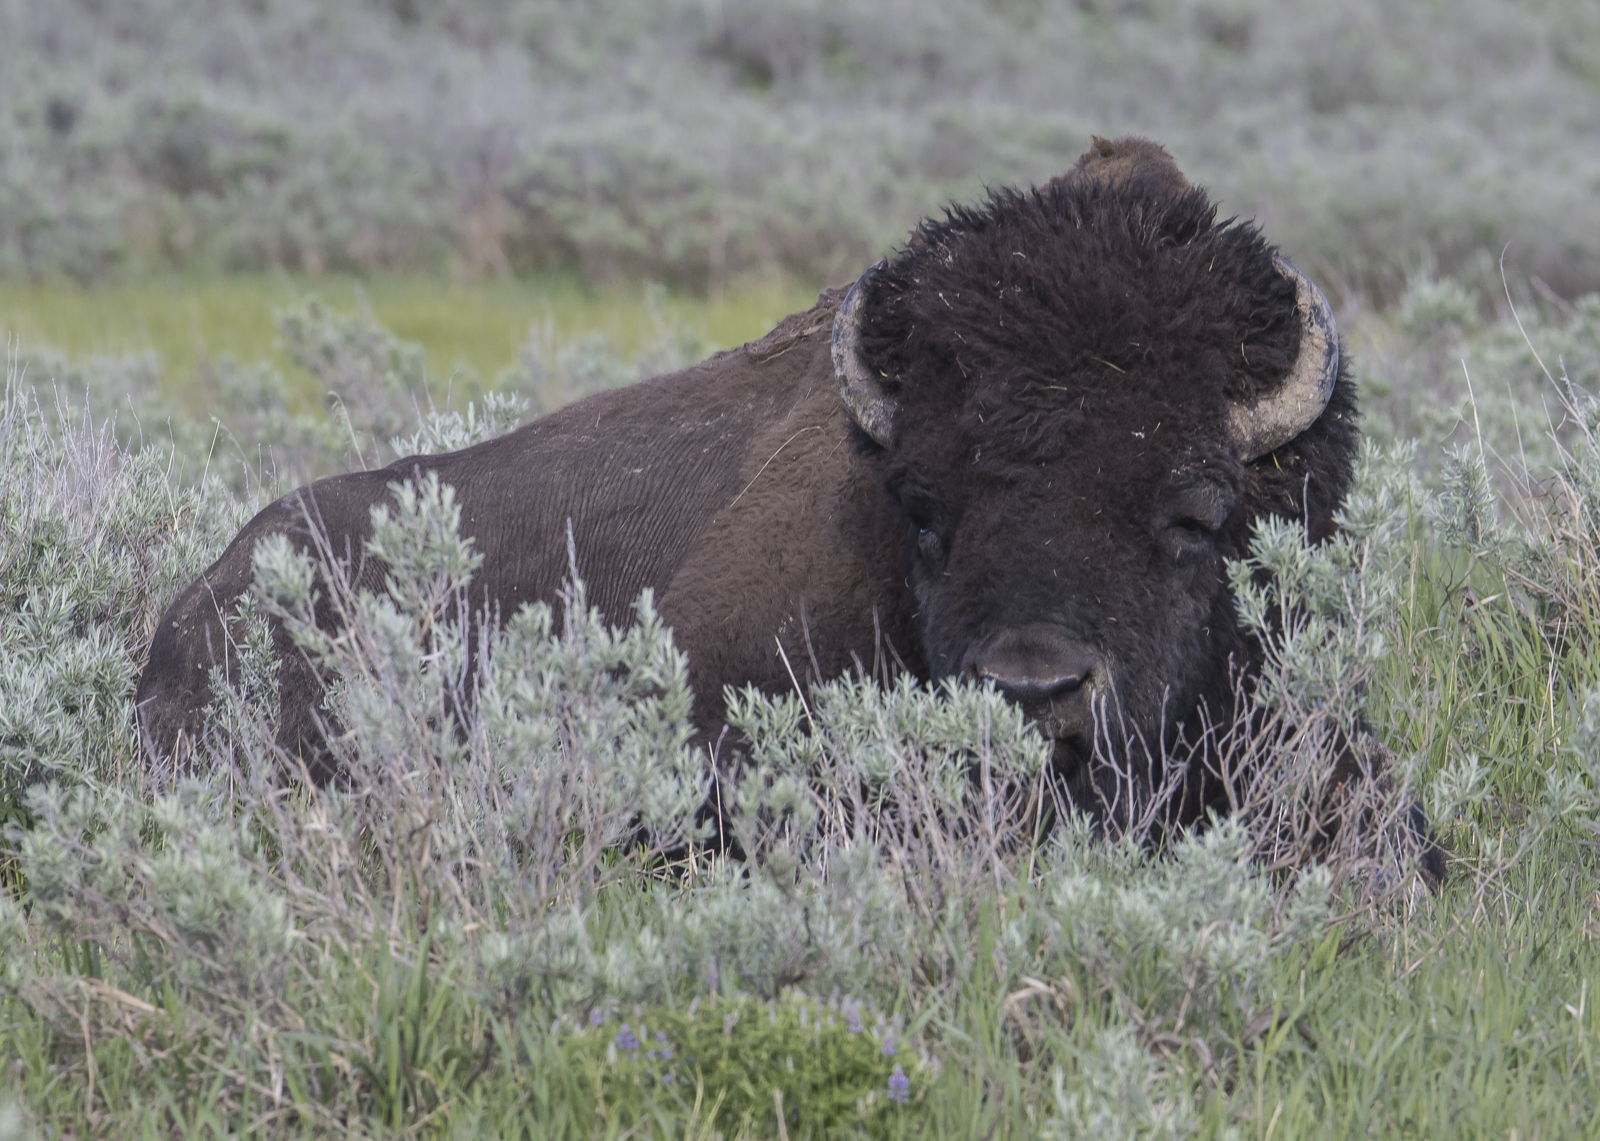 Bull bison laying down